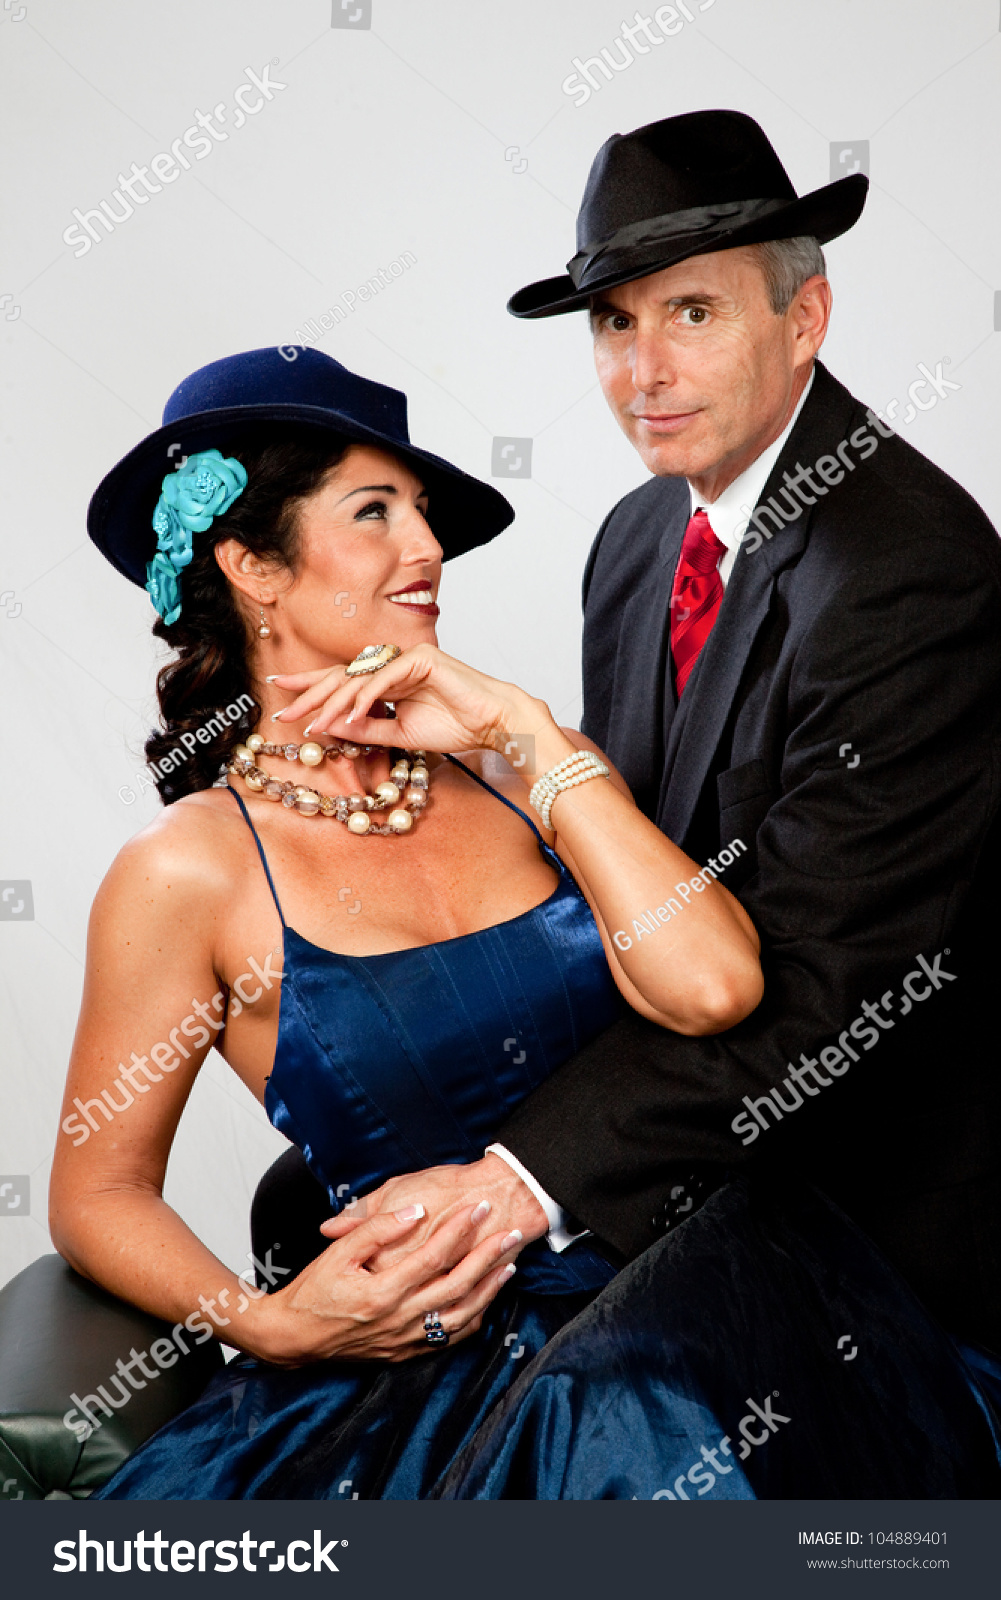 Couple Together In Semi Formal Dress. And A Romantic Mood Stock Photo 104889401 : Shutterstock